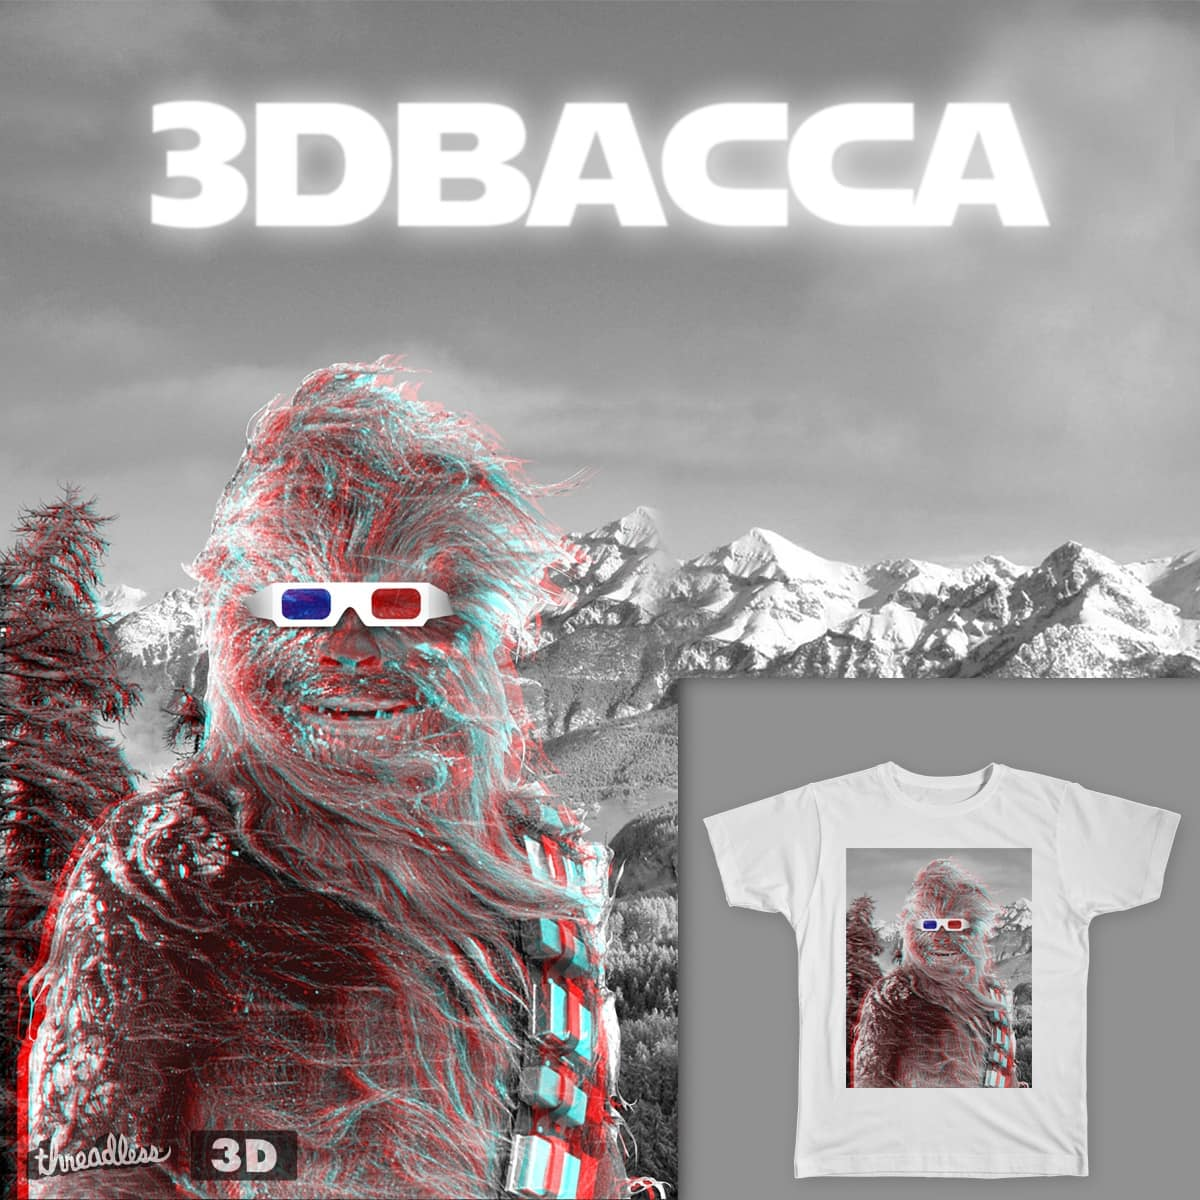 3DBACCA by ArmandoX30 on Threadless